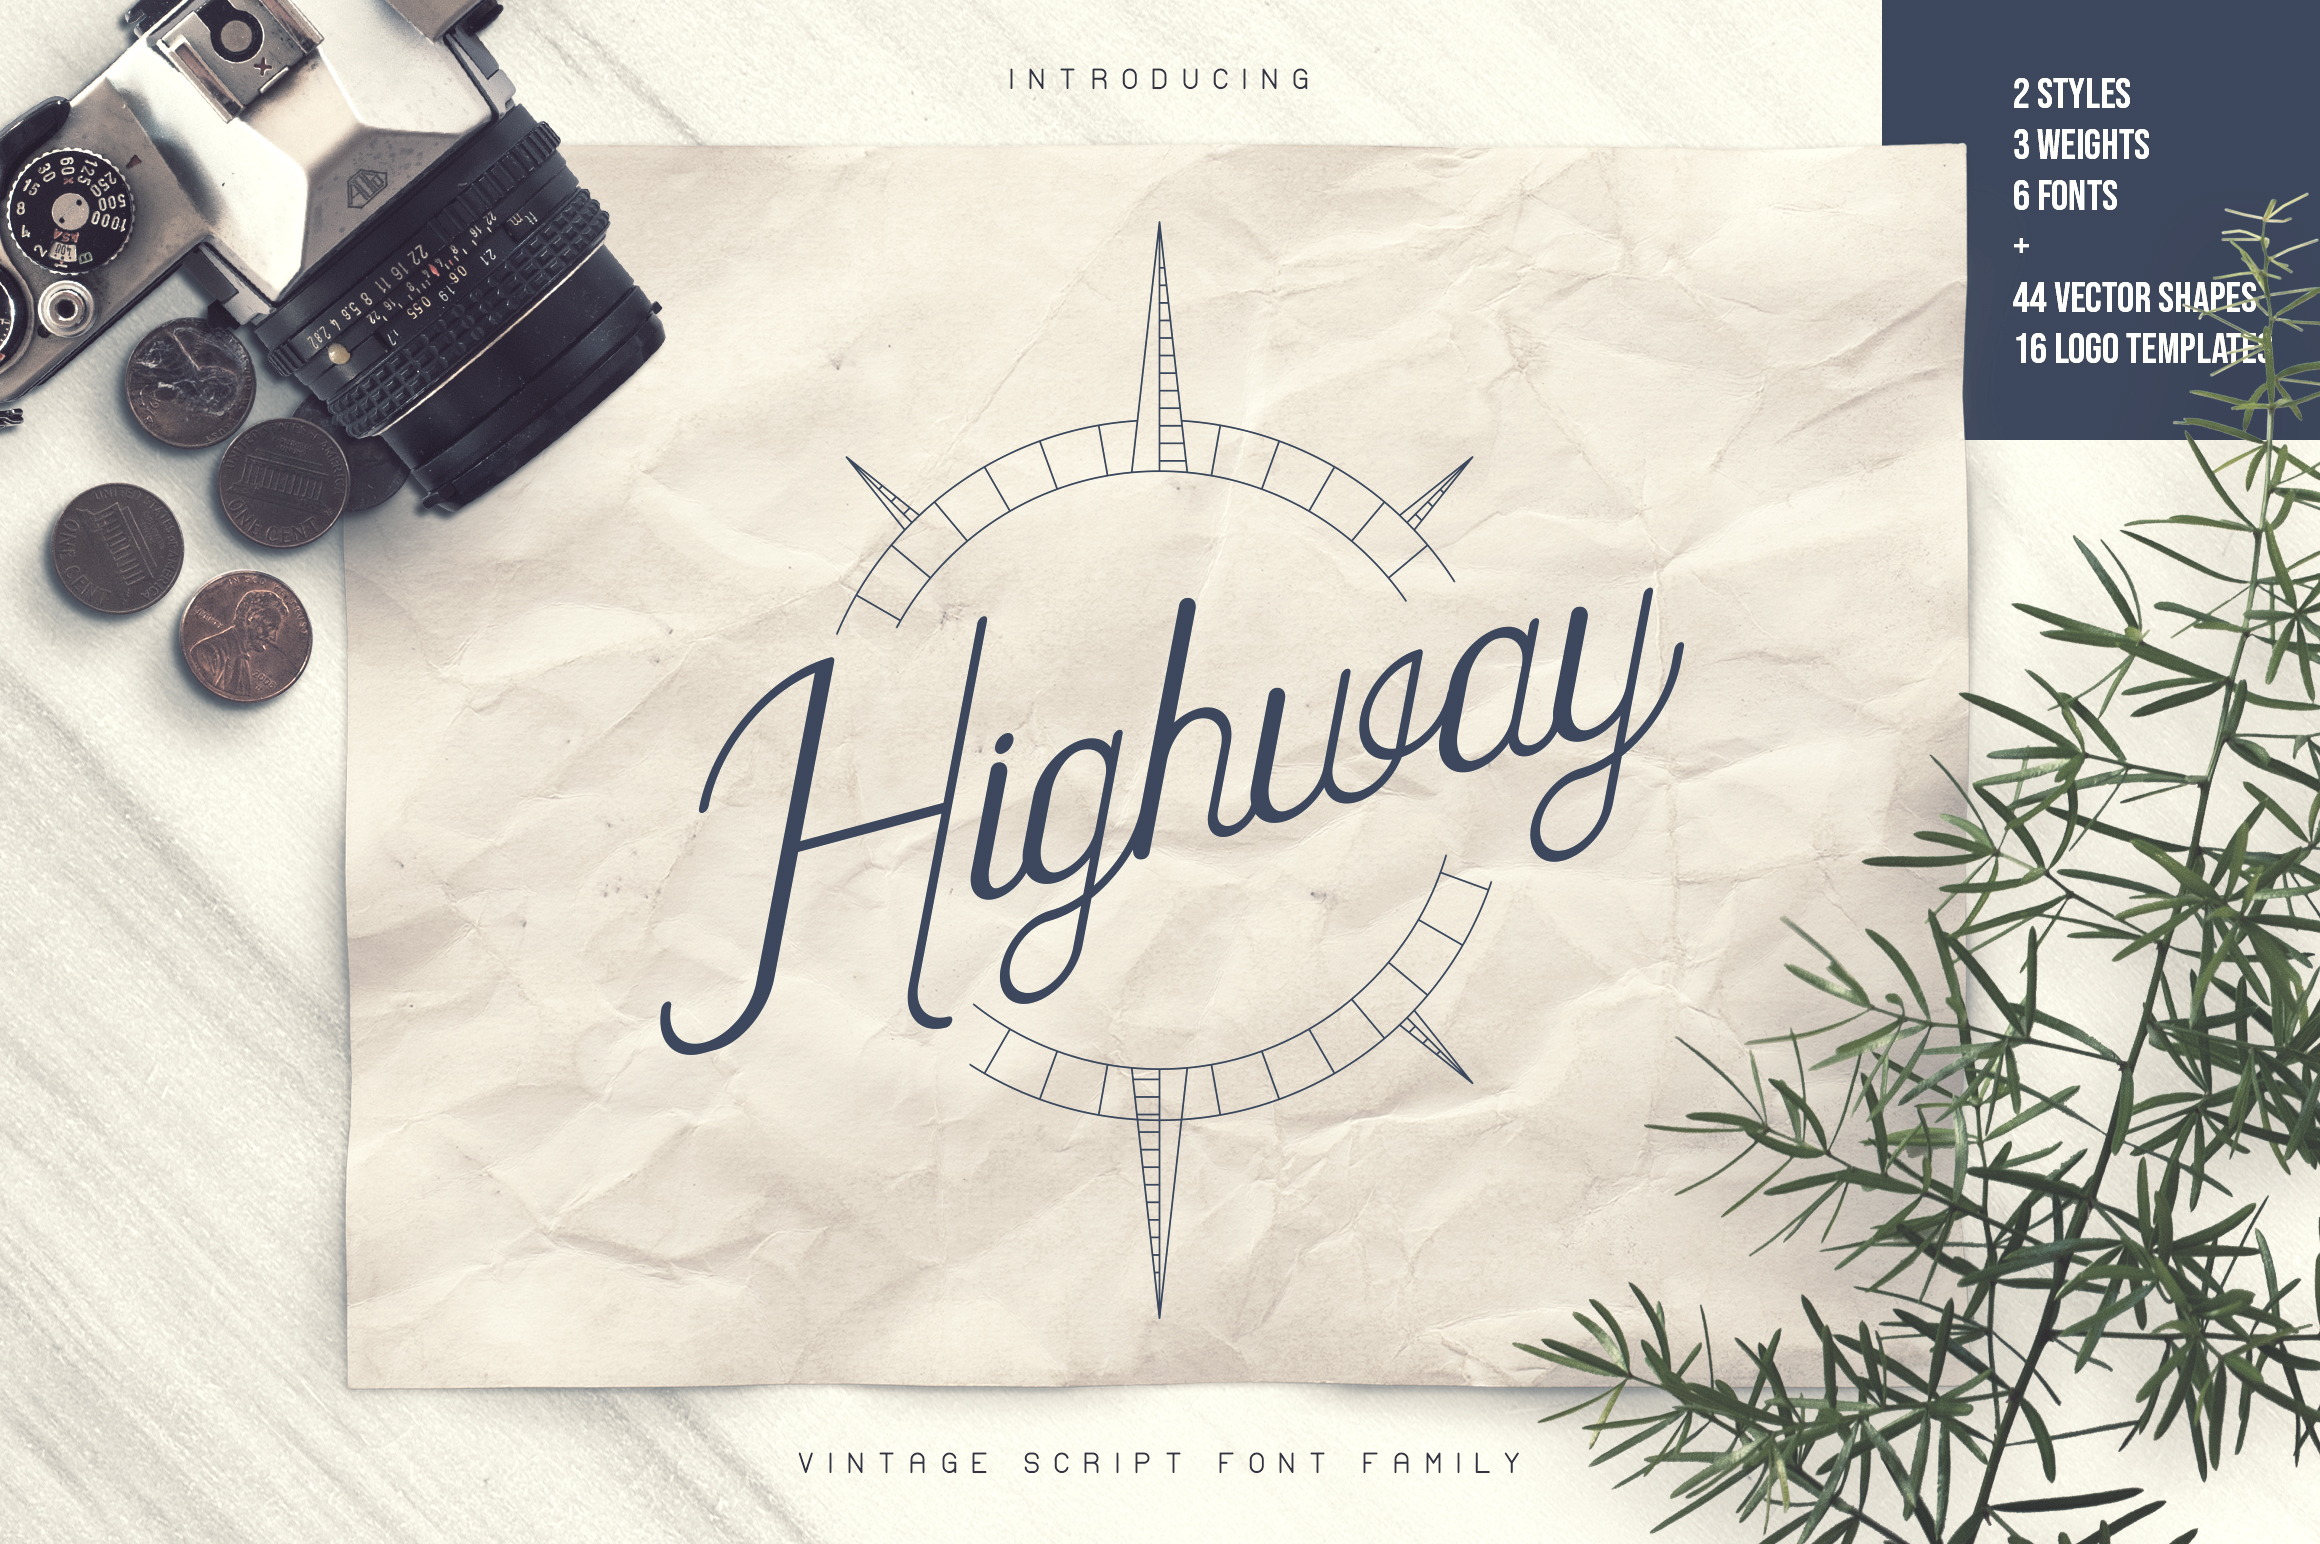 Highway - Vintage script font family with Extras example image 1